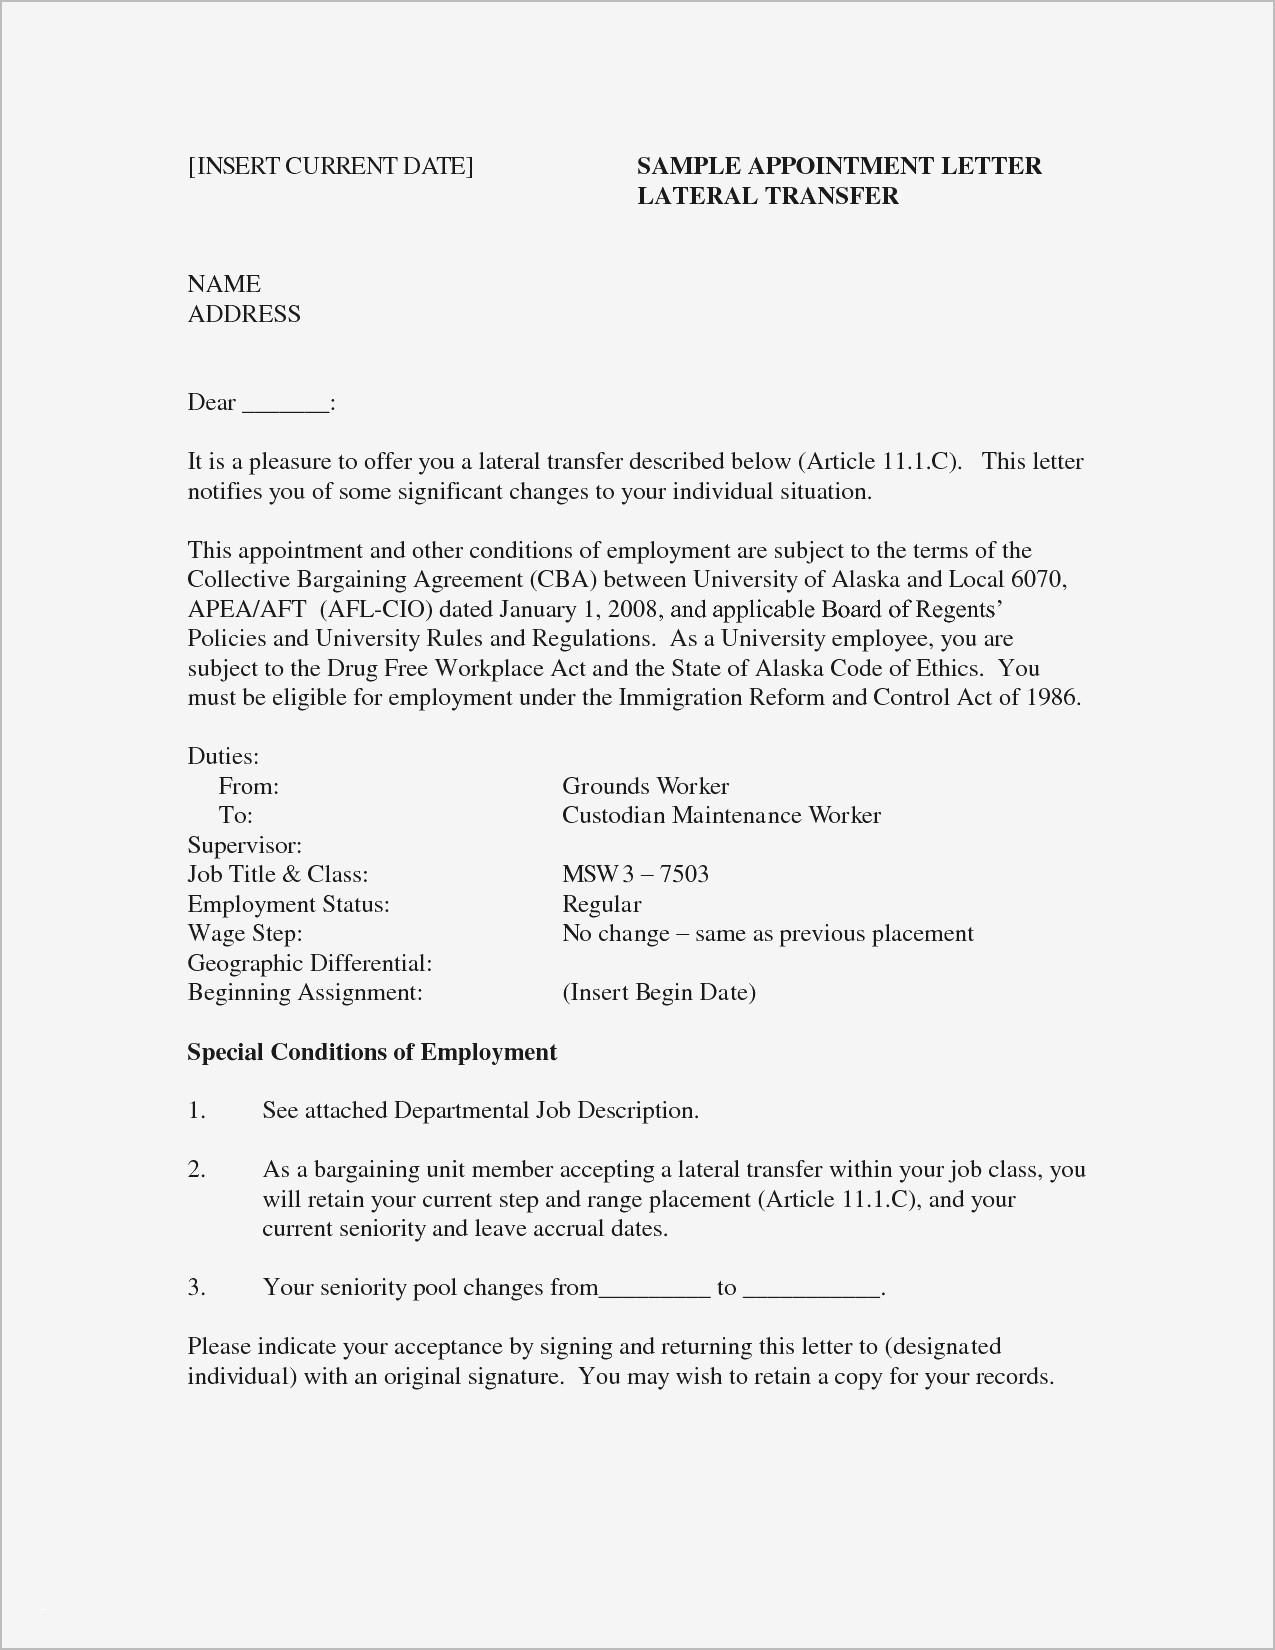 How To Do A Resume How To Word A Resume Lovely How Do You Write A Resume For A Job Of How To Word A Resume how to do a resume|wikiresume.com